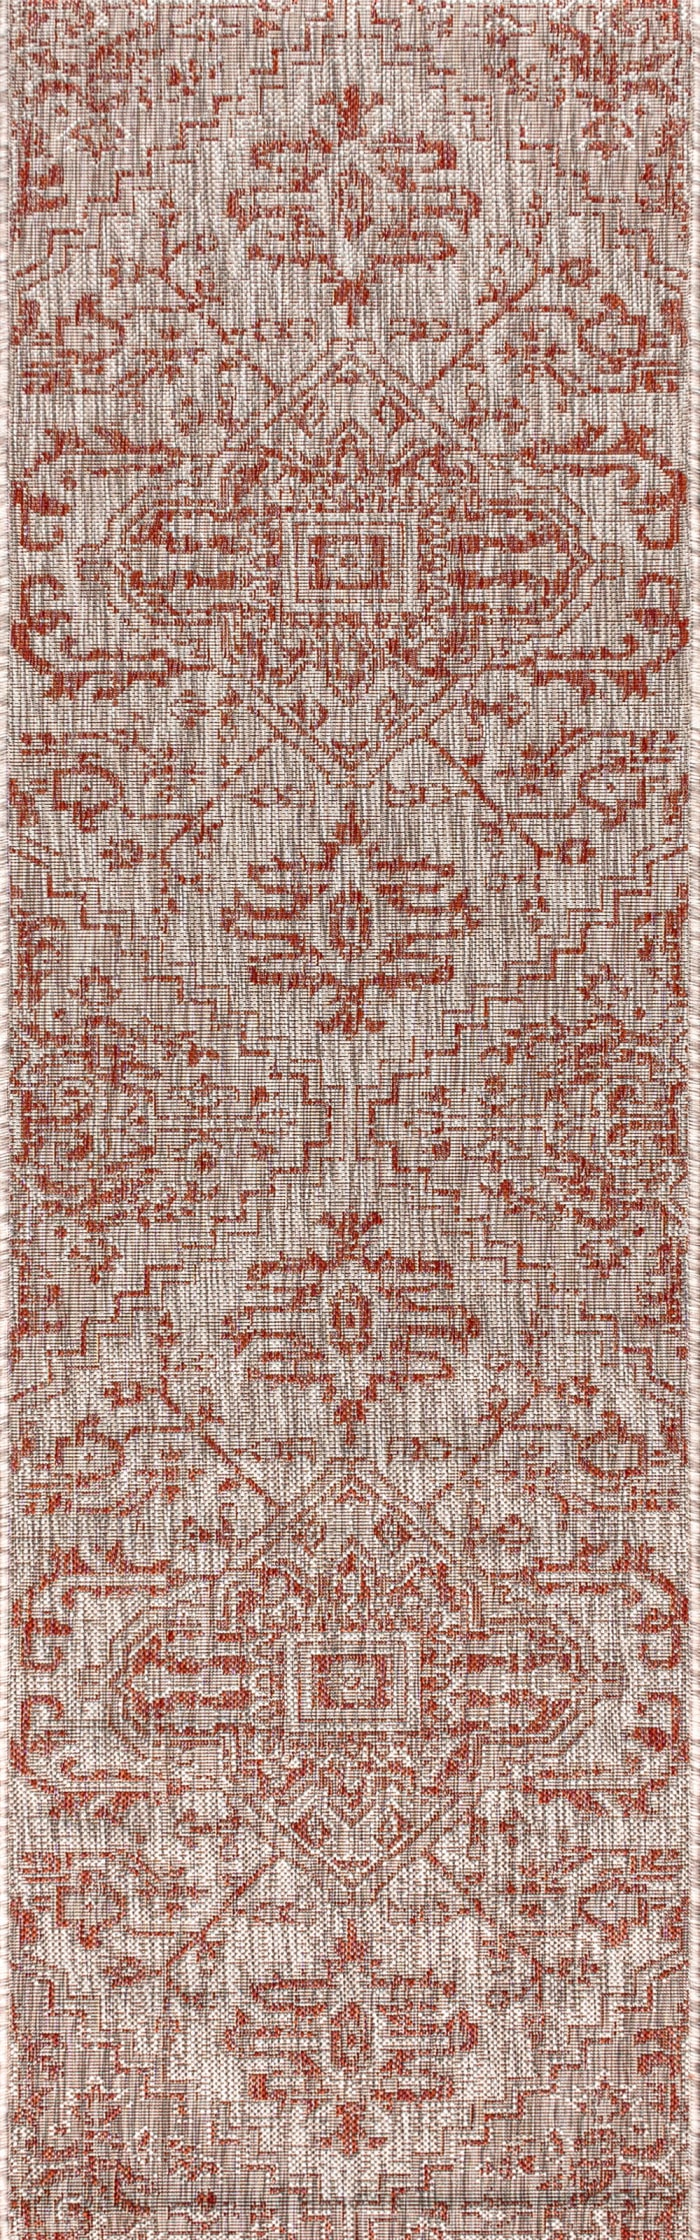 Estrella Bohemian Medallion Textu Weave Red and Taupe Outdoor Runner Rug